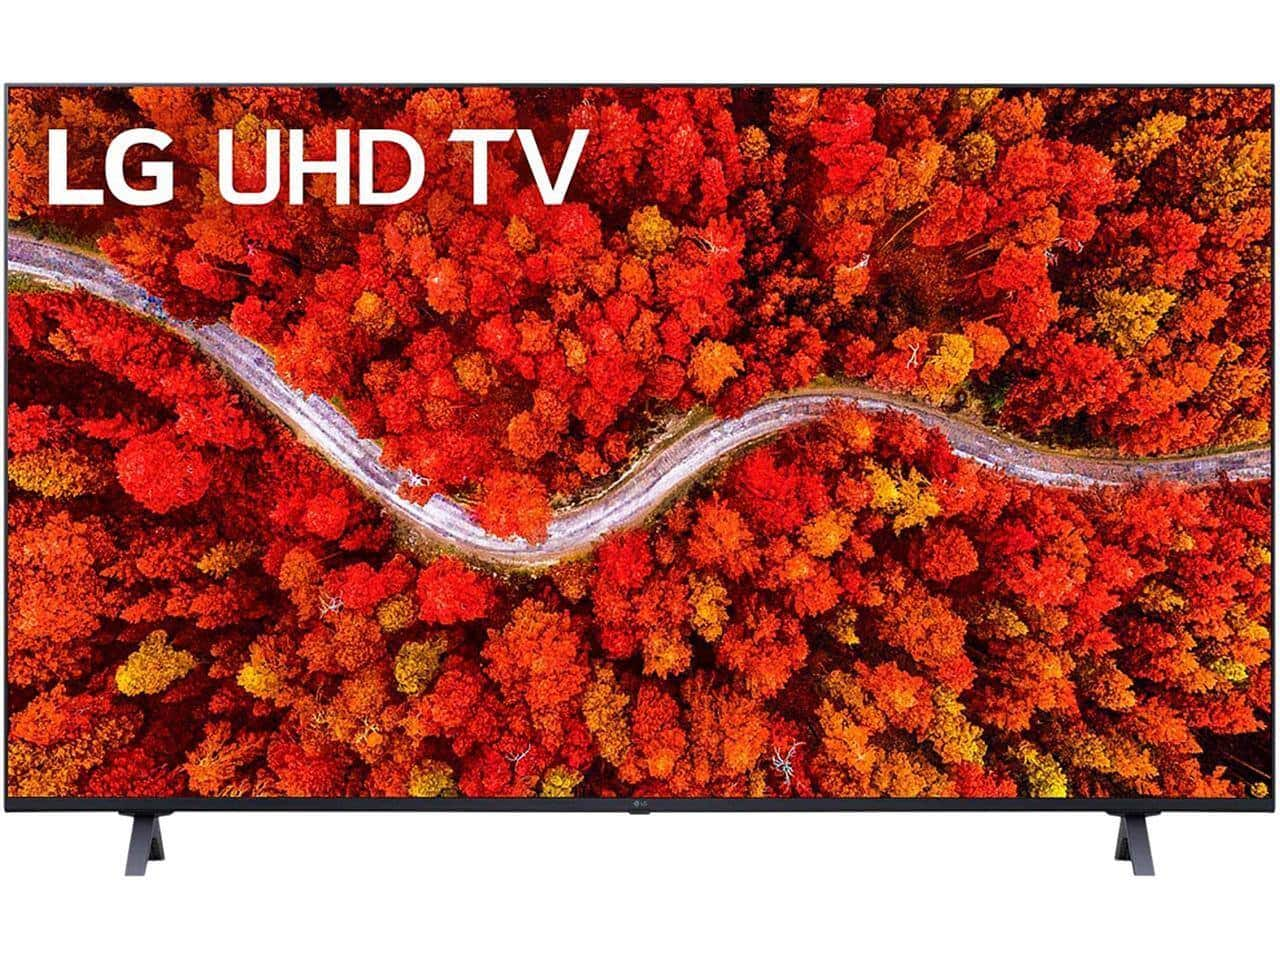 """LG 50"""" 4K Smart UHD TV 50UP8000PUA $496.99 after code with Free Shipping"""